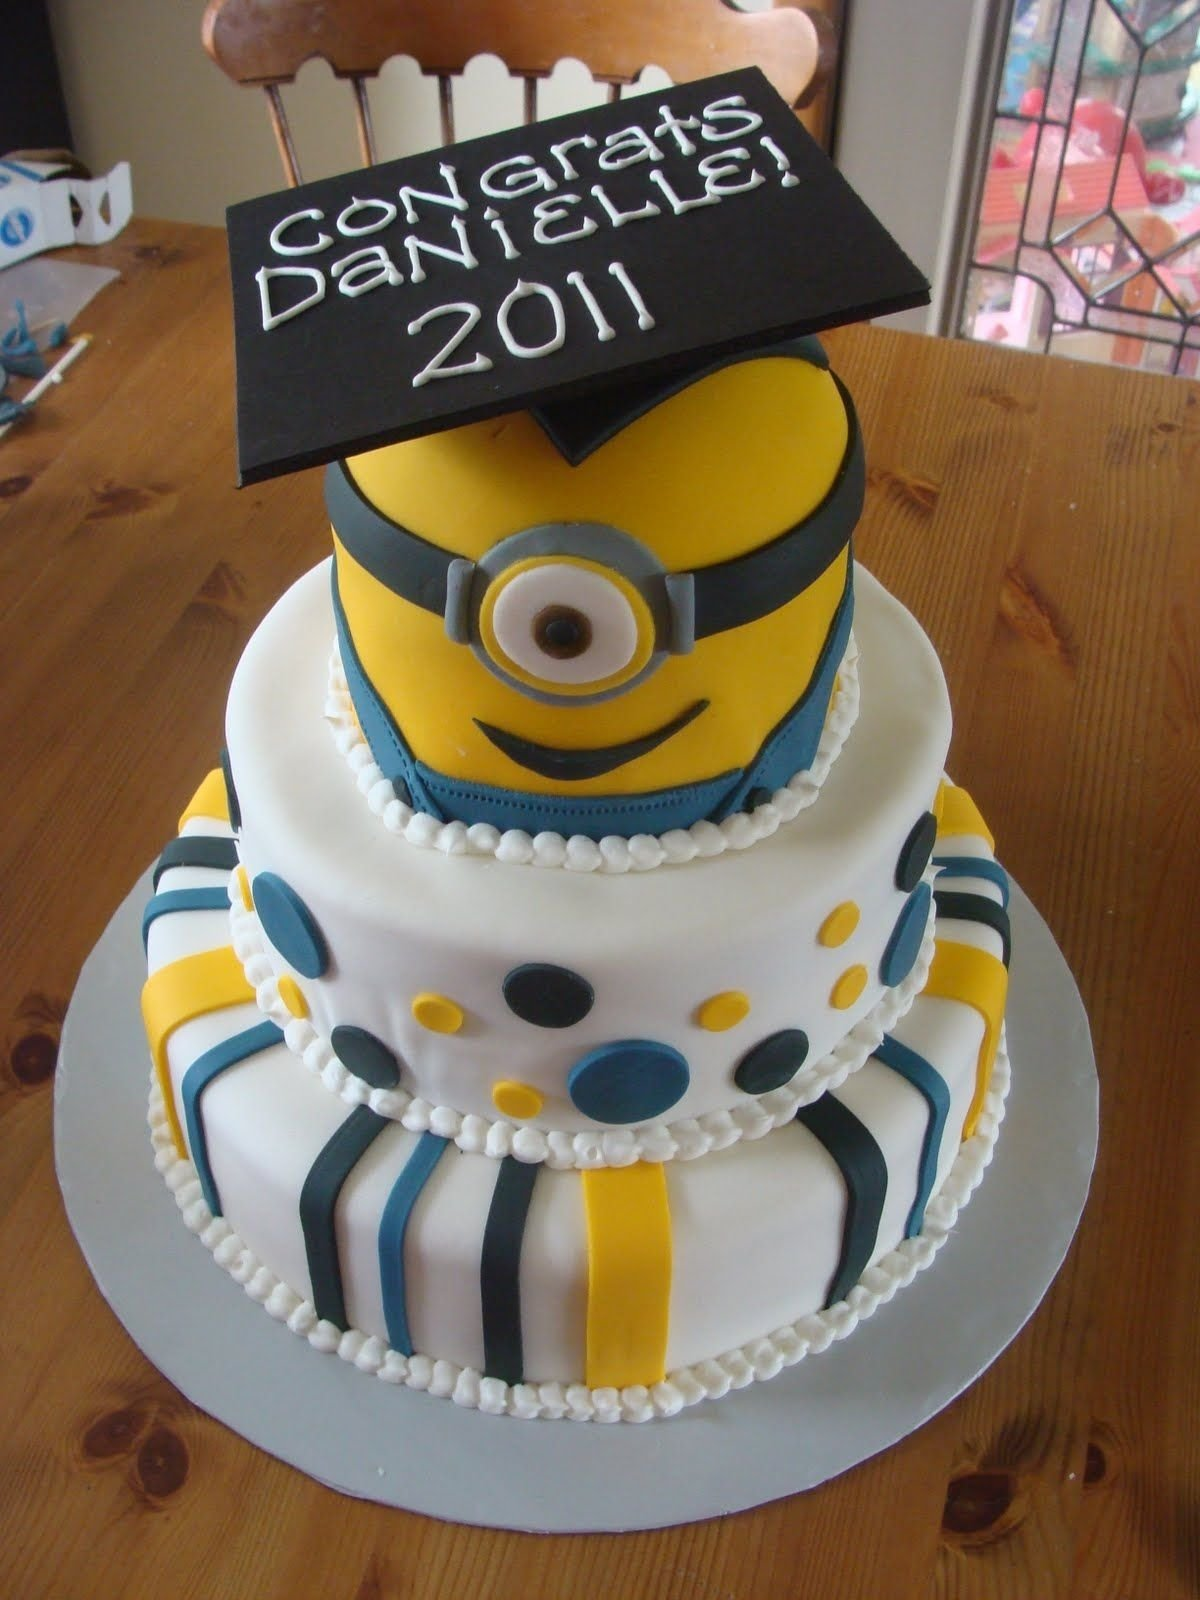 10 Trendy Despicable Me Birthday Cake Ideas despicable me 2 movie cakes photos sweet treatsbonnie